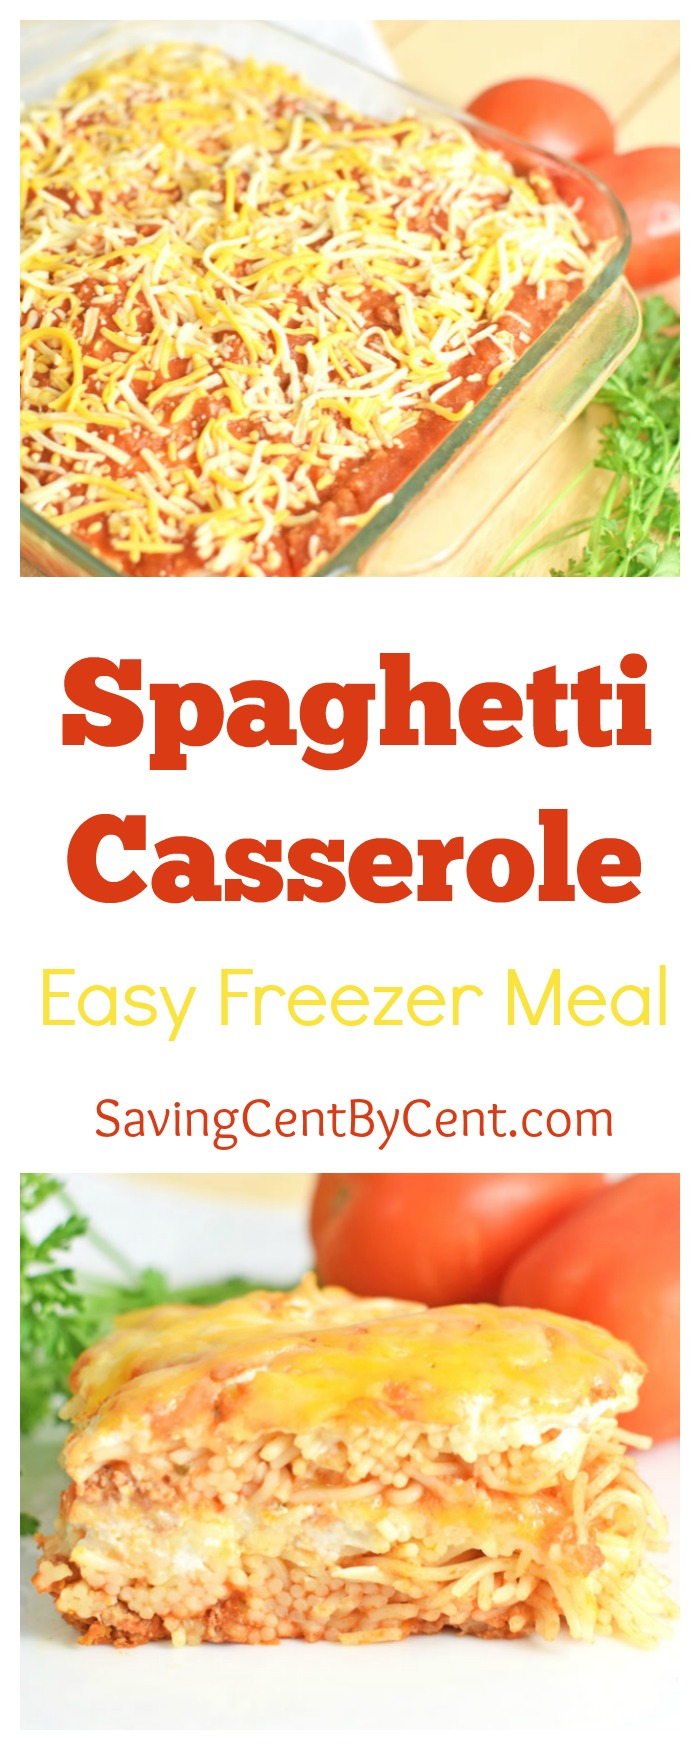 And Easy Freezer Meal Spaghetti Casserole